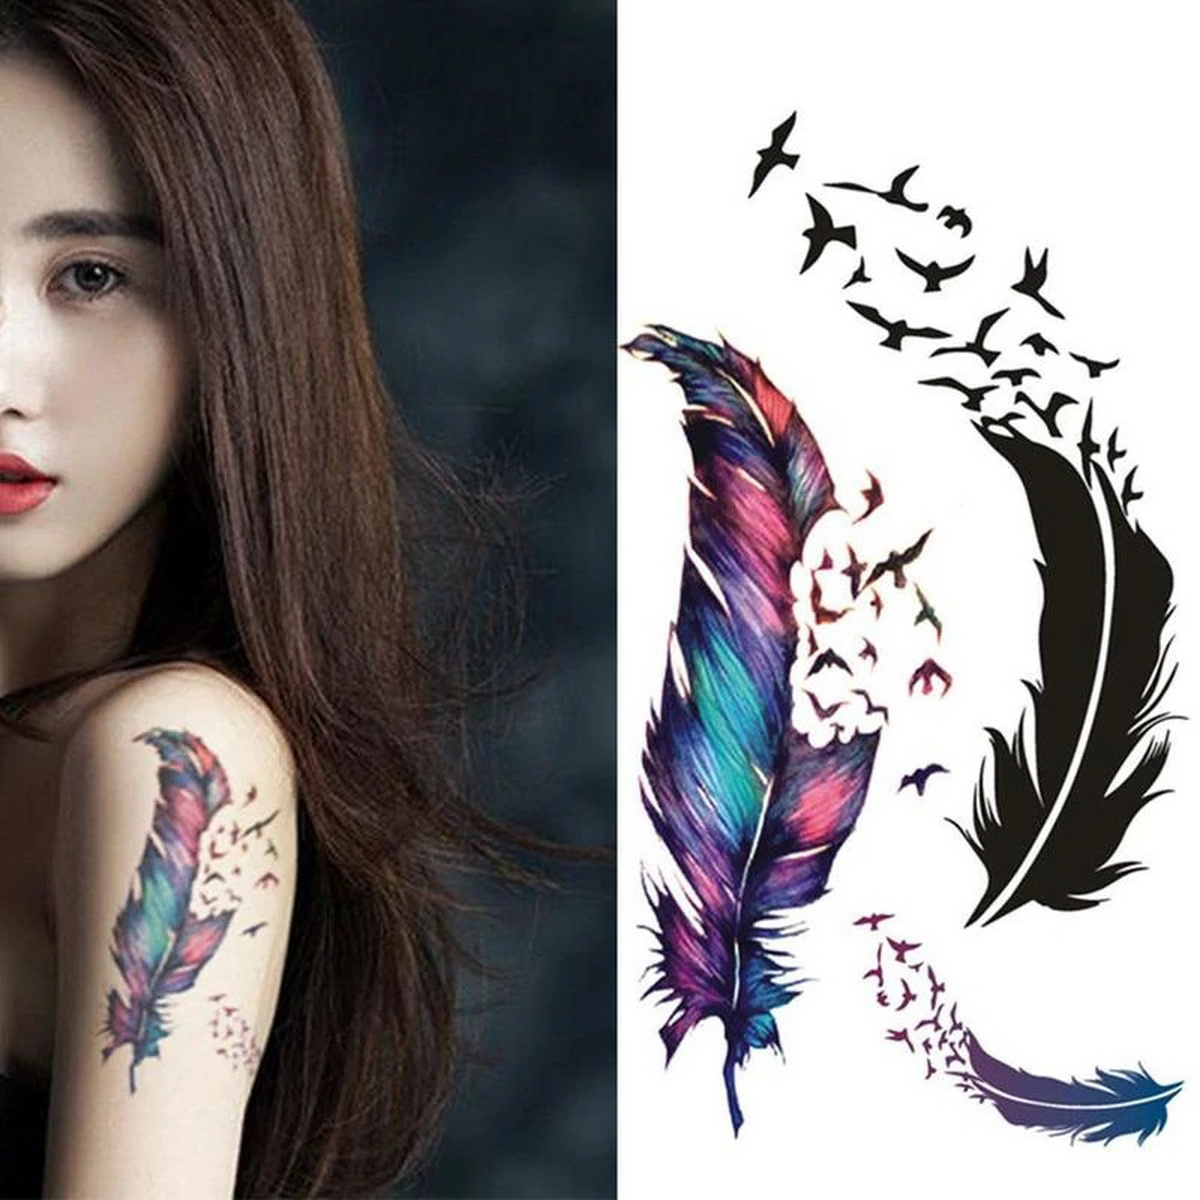 Waterproof Feather Small Freshness Tattoo Sticker Colorful Three